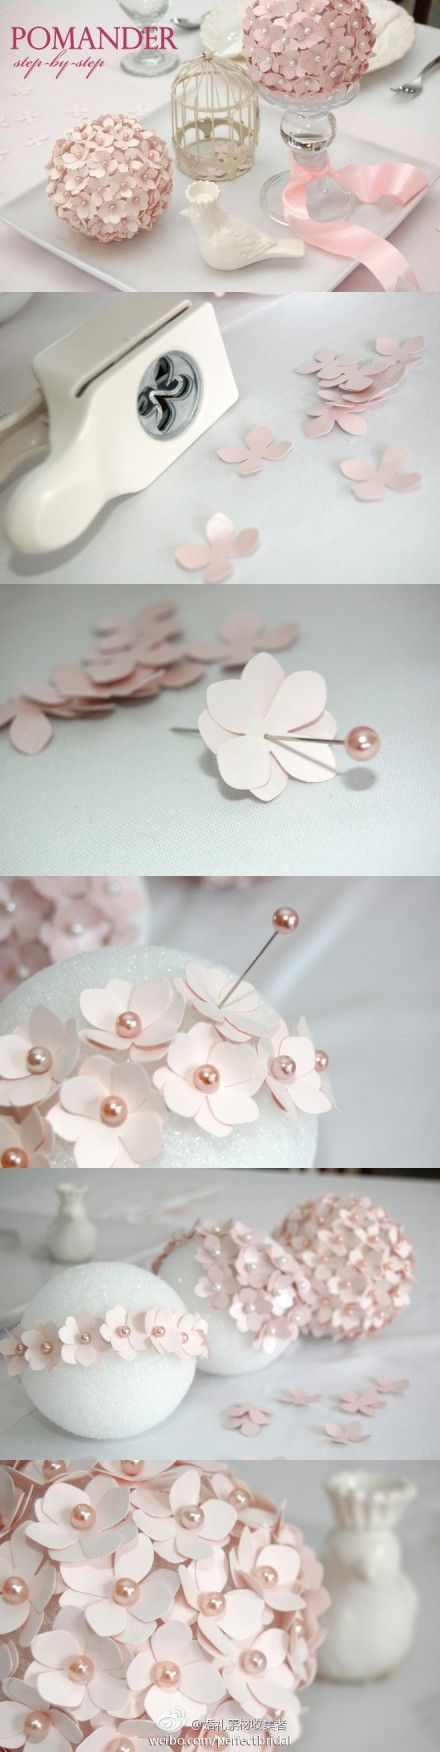 Cute: Flowers Ball, Ideas, Flower Ball, Paper Flowers, Paper Punch, Centerpieces, Paperpunch, Tables Decor, Center Pieces